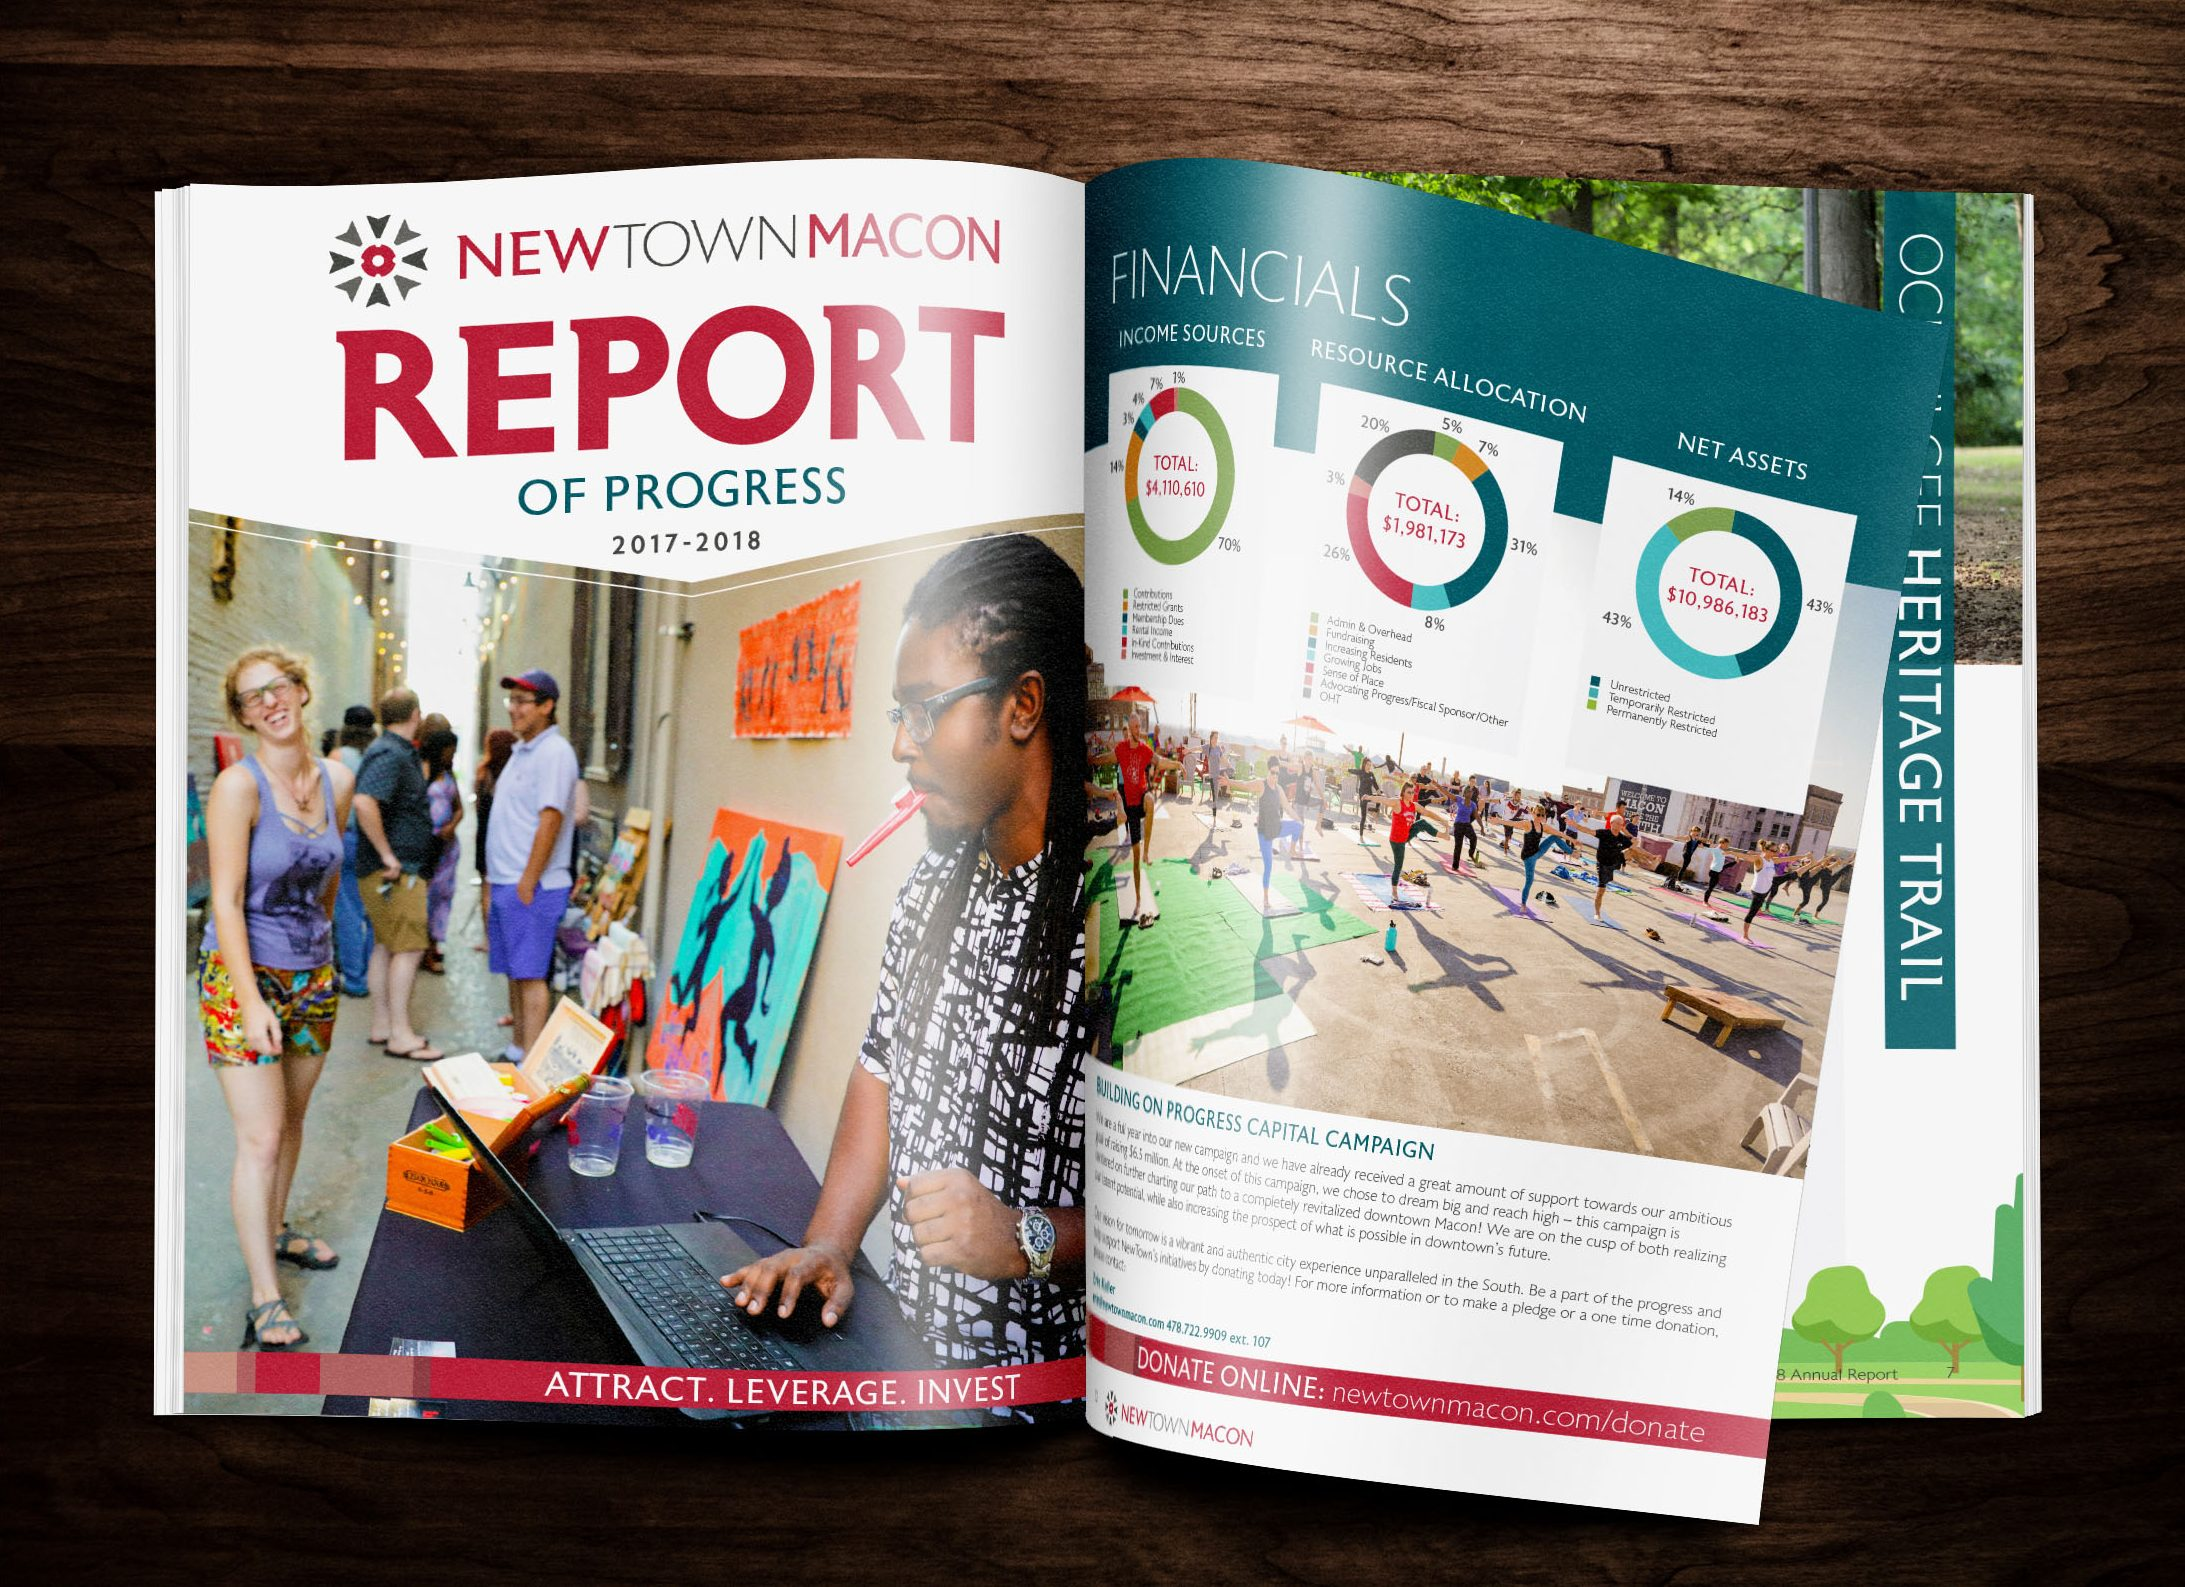 multi-page annual report design for the non-profit organization NewTown Macon in Macon, Georgia